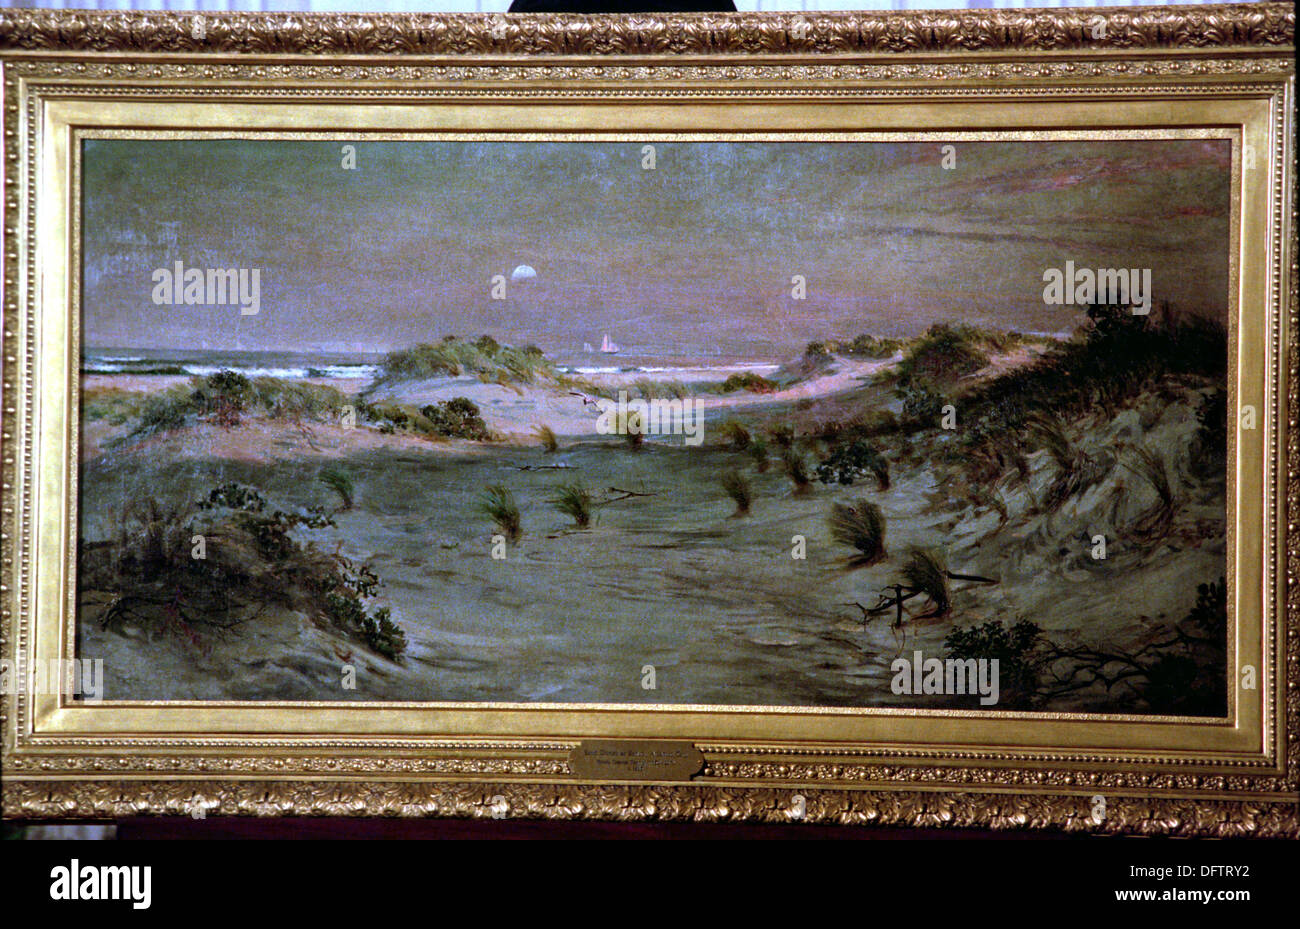 Painting sand dunes at sunset in atlantic city 1885 by stock painting sand dunes at sunset in atlantic city 1885 by african american artist henry ossawa tanner at the white house october 29 1996 in washington sciox Image collections